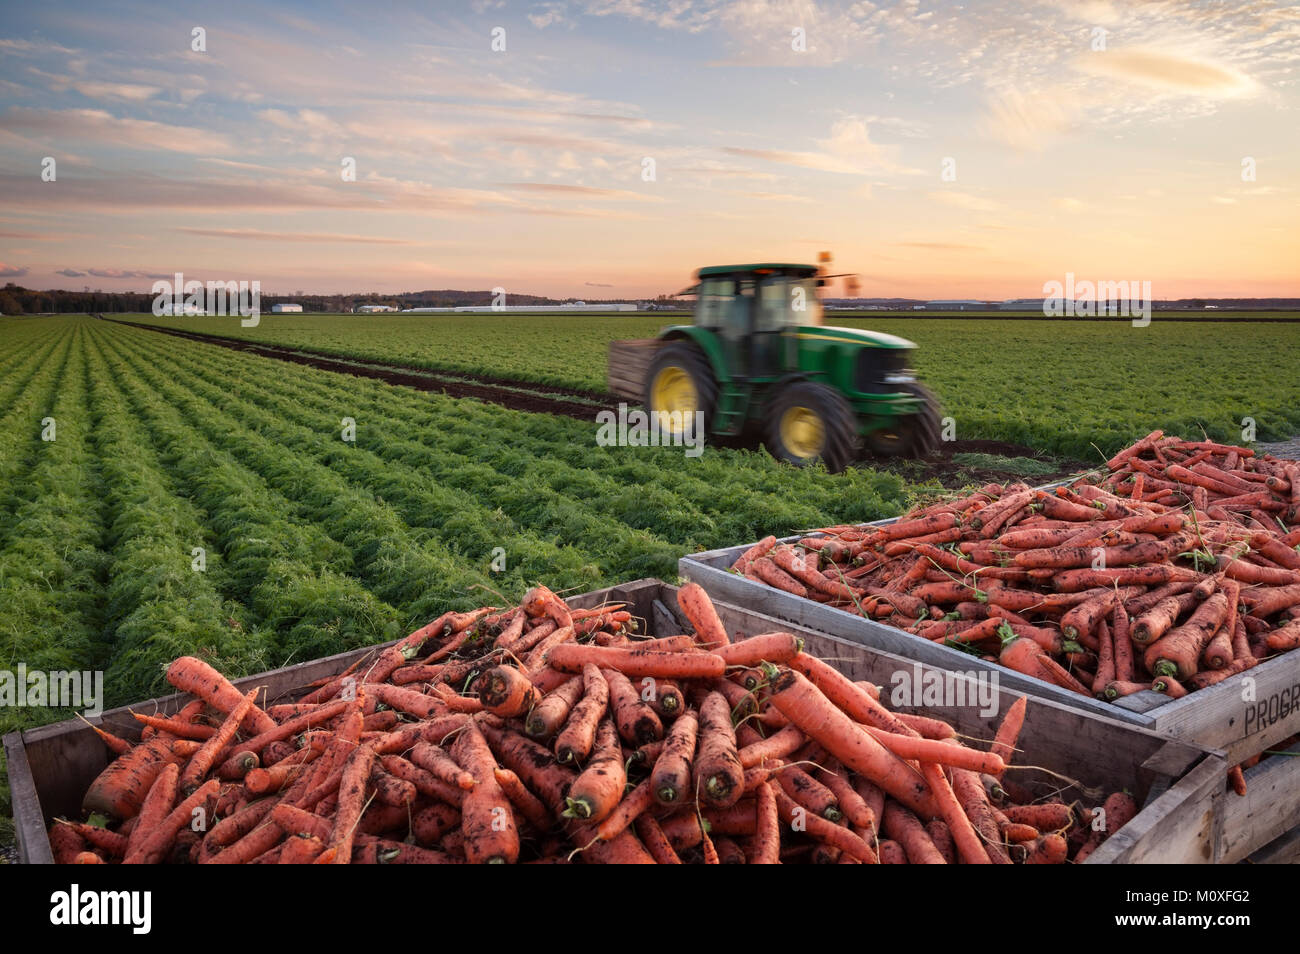 A tractor collecting carrots with crates of carrots and a mature field of carrots in the background. Holland marsh - Stock Image